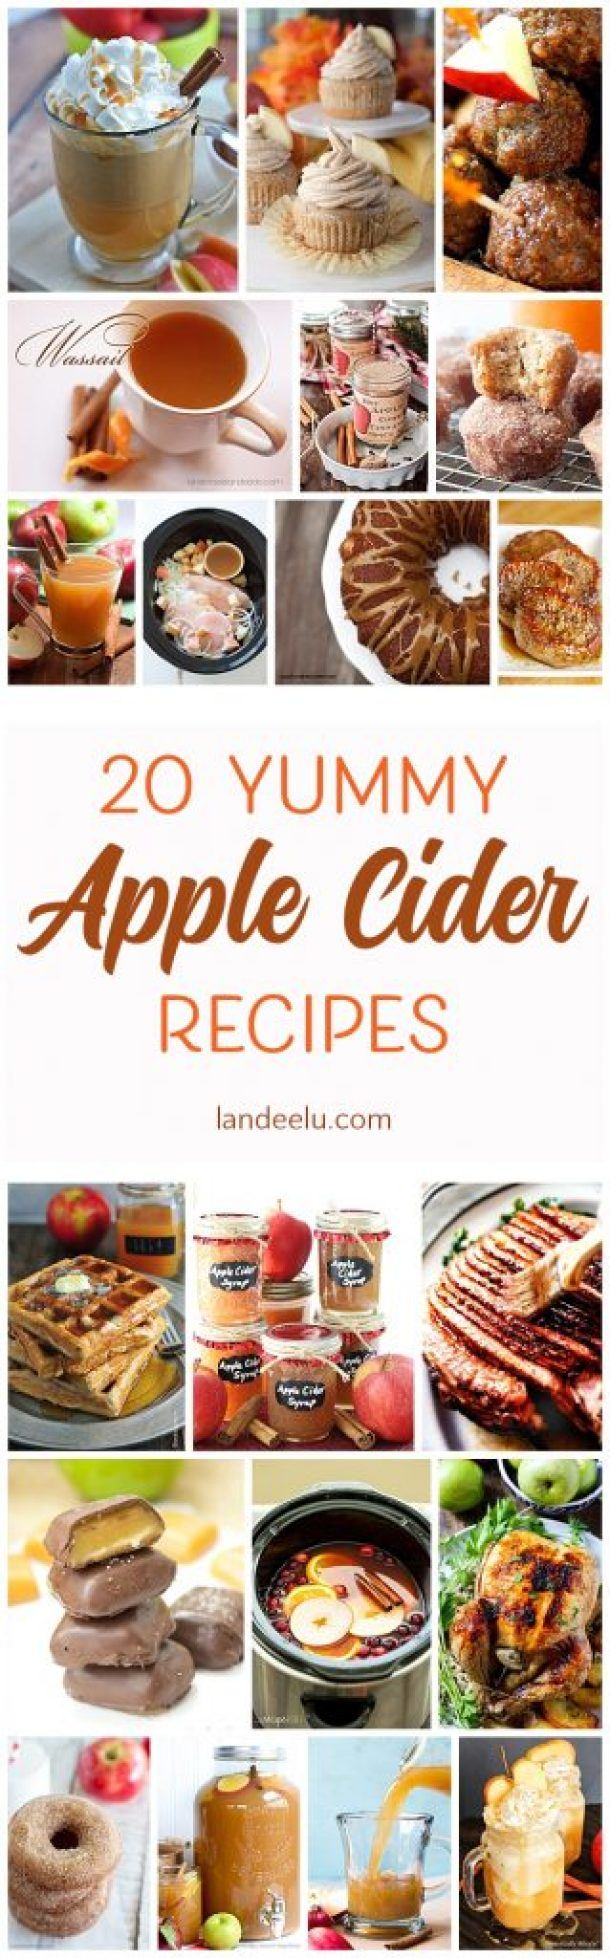 Over 20 delicious apple cider recipes for fall!